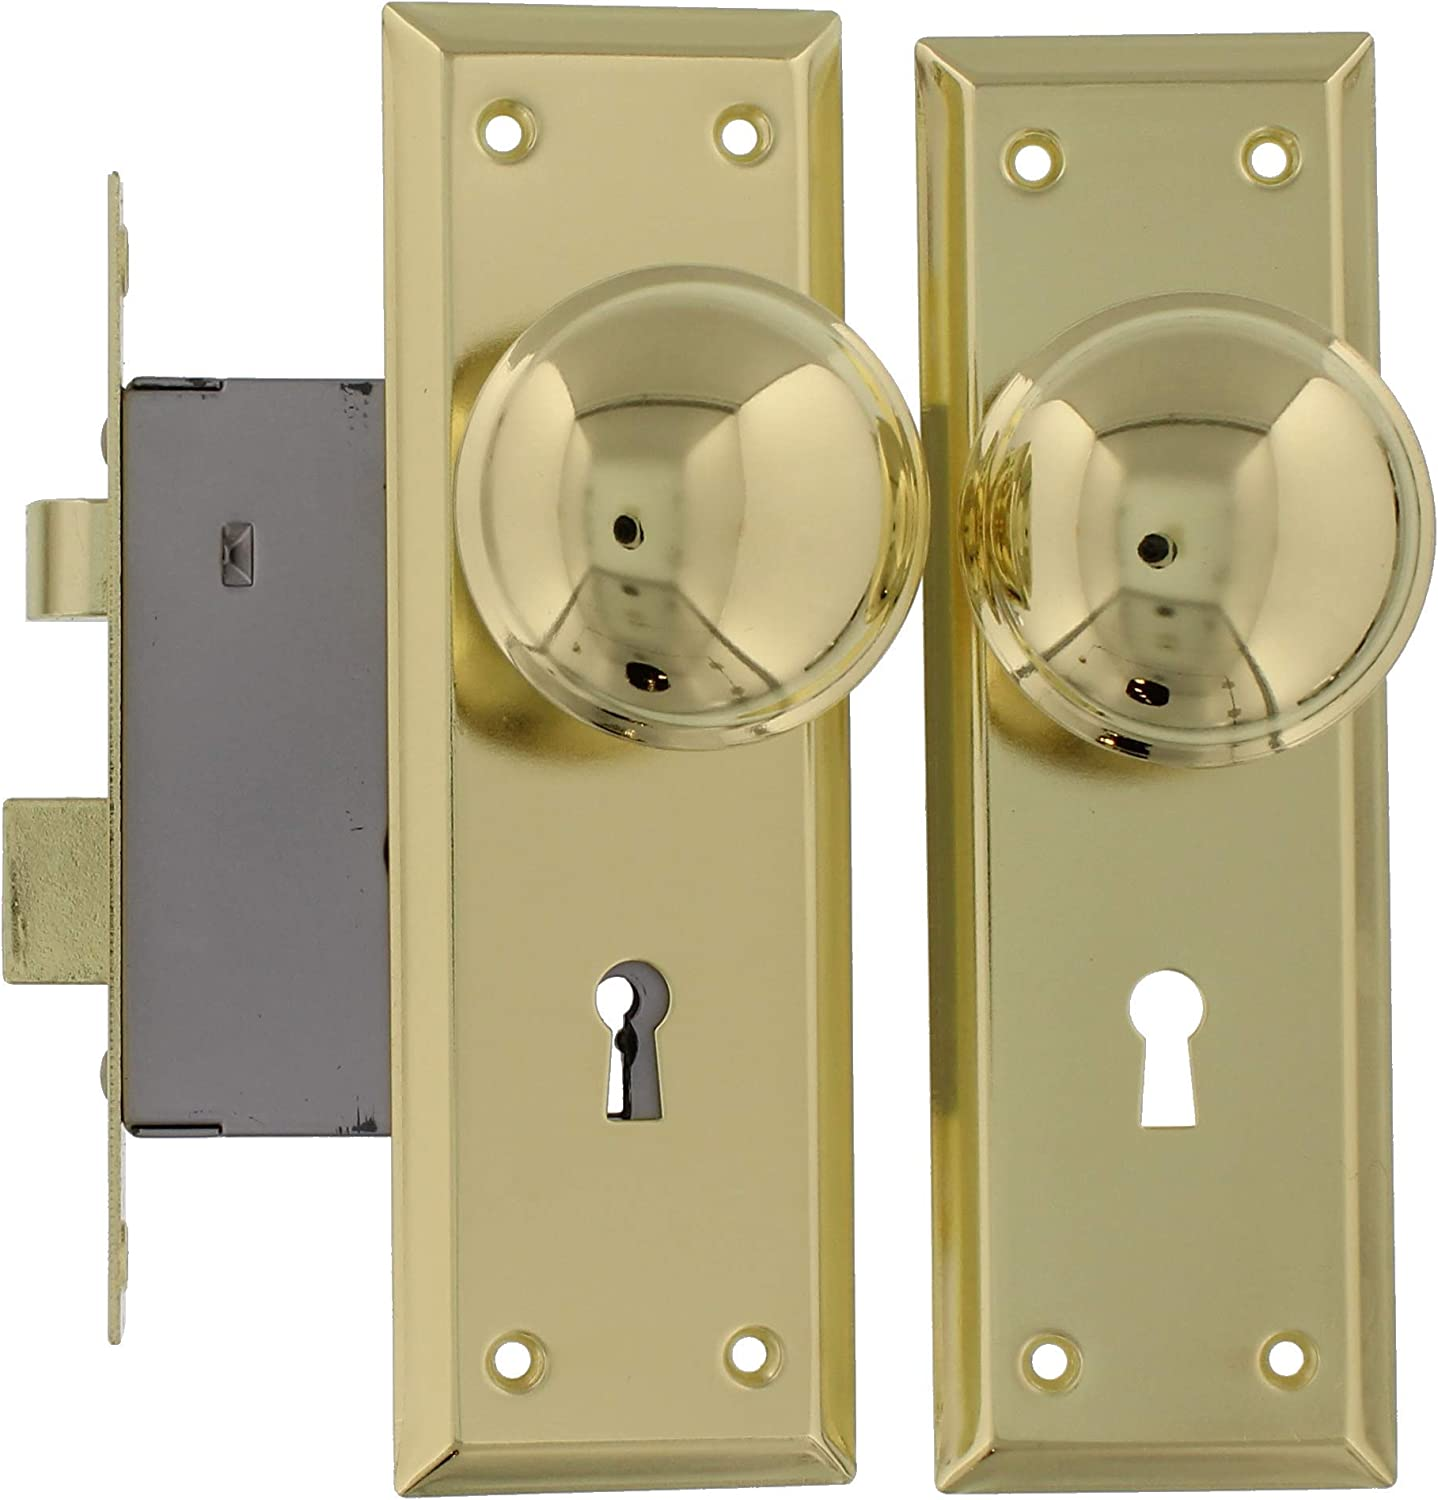 No key Vintage DOOR KNOB AND LOCK PLATE SET